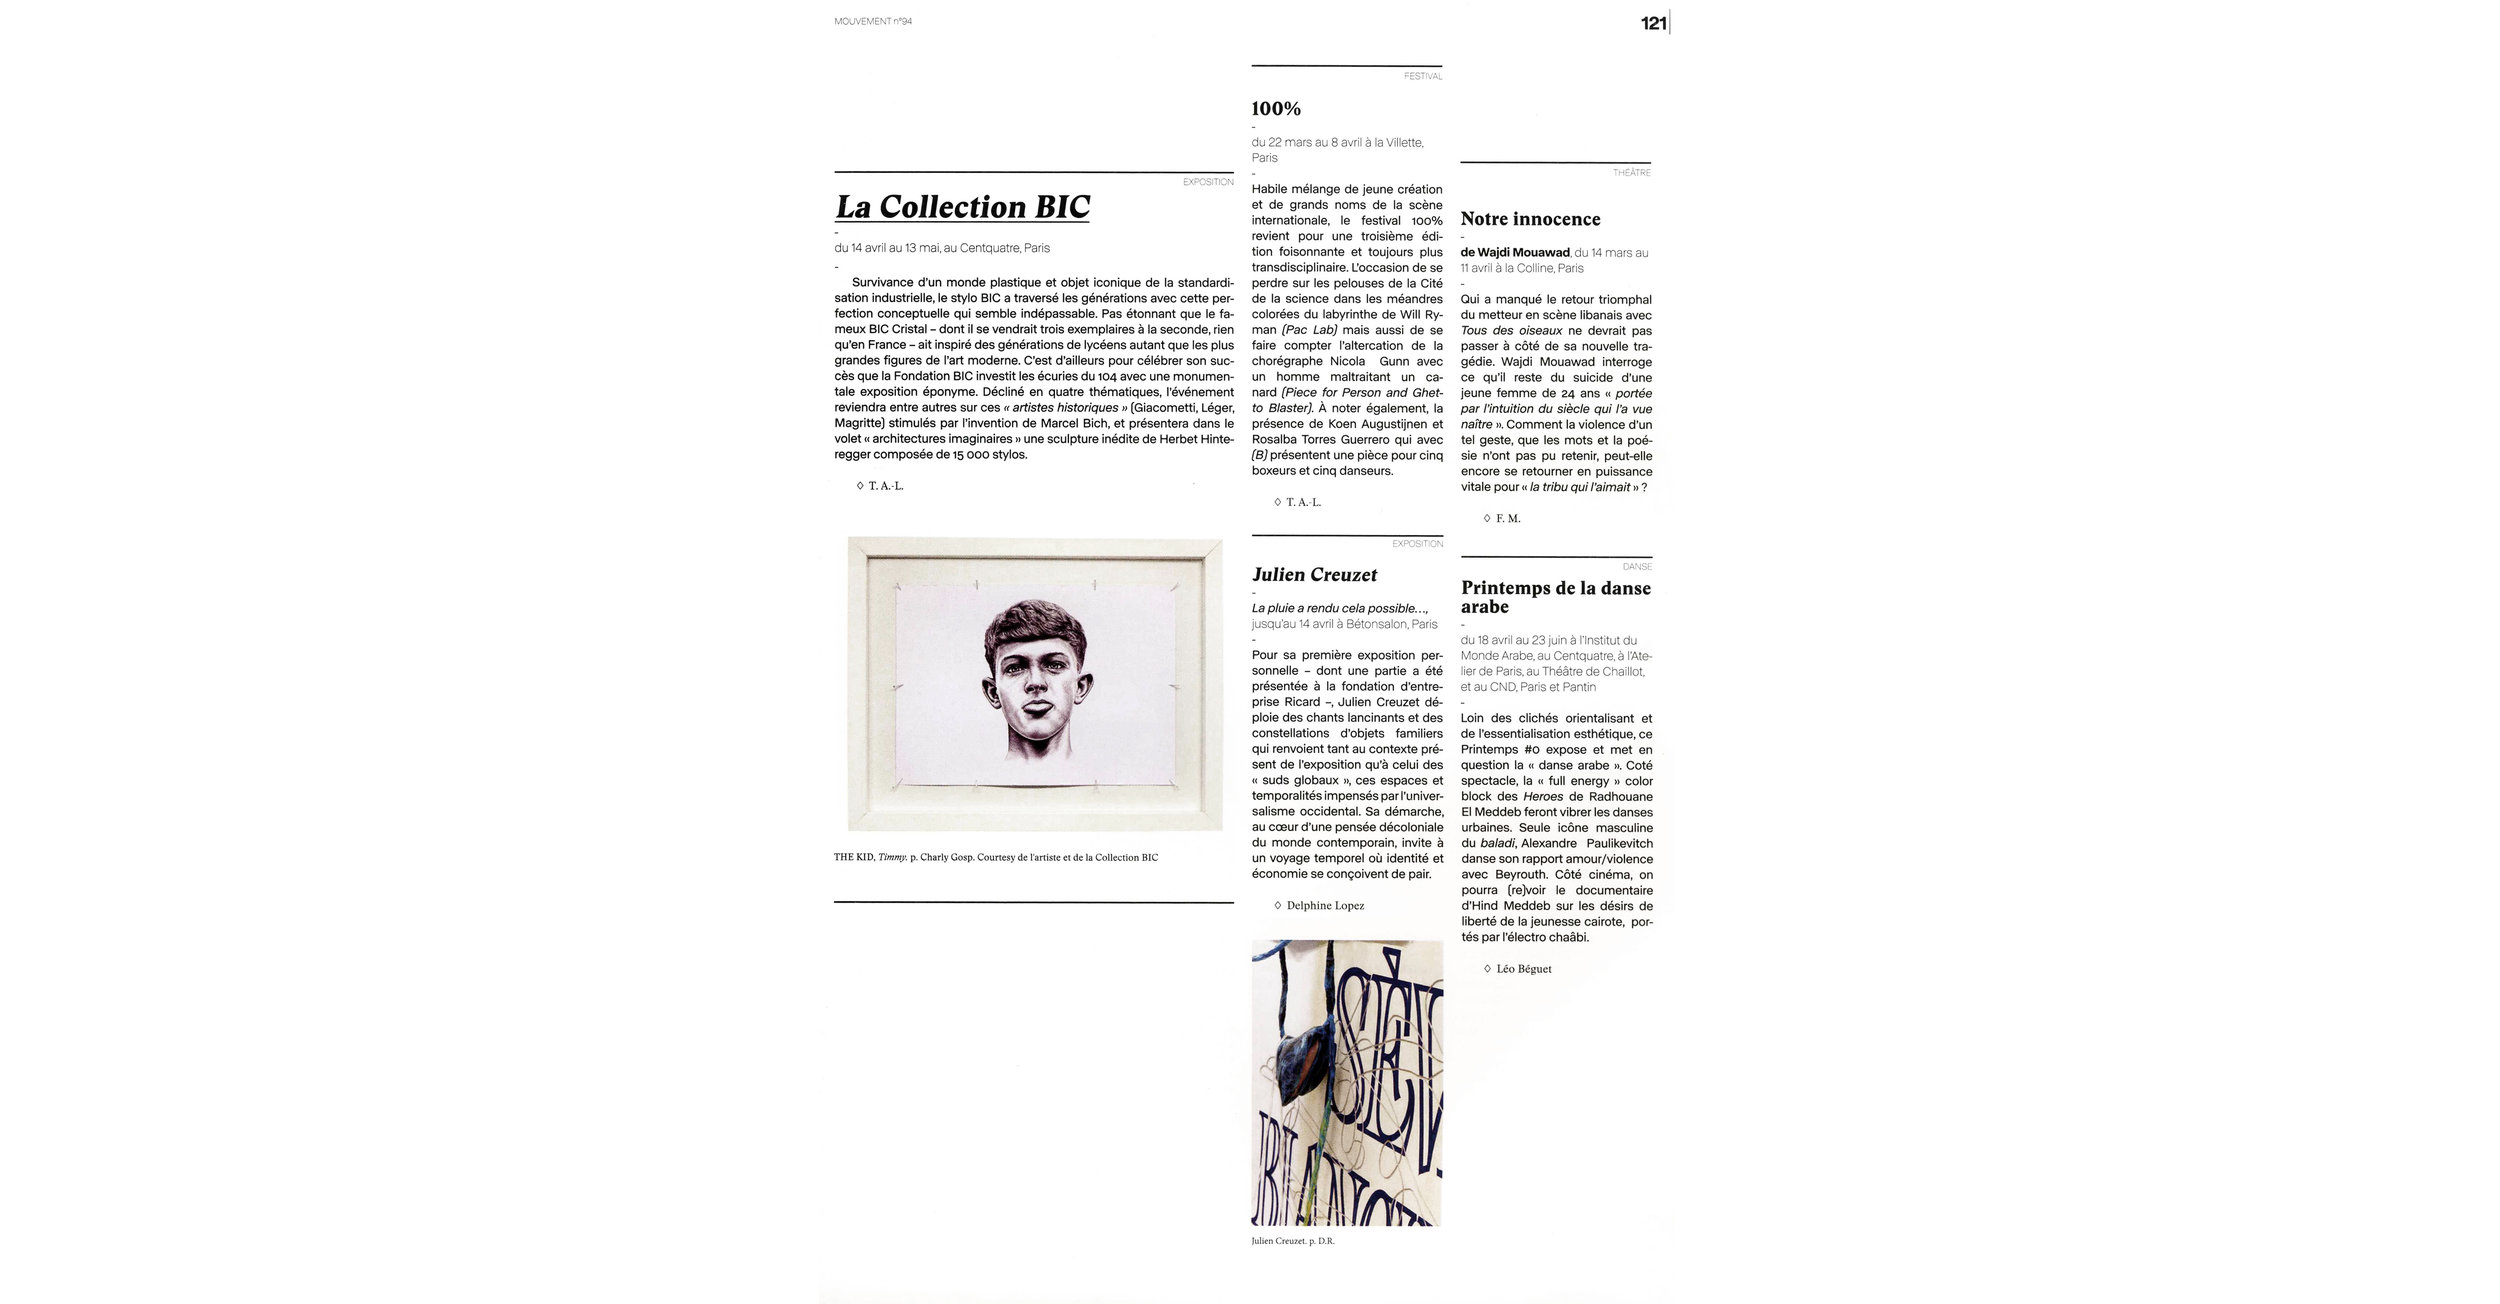 THE KID in MOUVEMENT Magazine - March April 2018 Print Issue - France - Page 121- Page 121 - 150dpi - Web wb.jpg